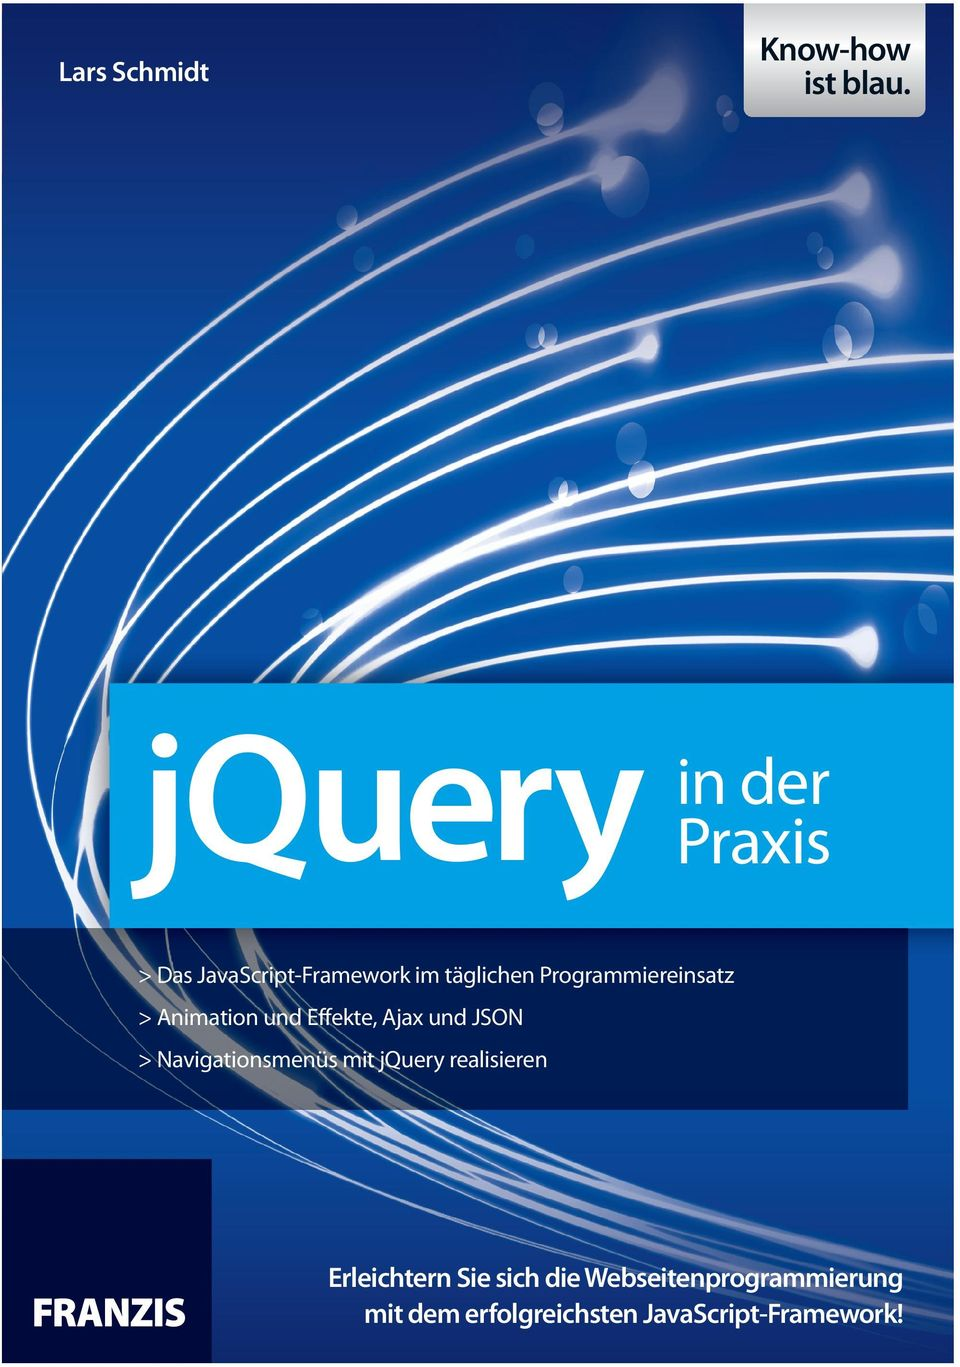 jquery-methoden Formulare und jquery Ajax und JSON Ereignisse: Events und Event Handling Animationen und Effekte: Sliding, Fading, Easing Das jquery UI Drag and Drop Einen Warenkorb mit Drag and Drop